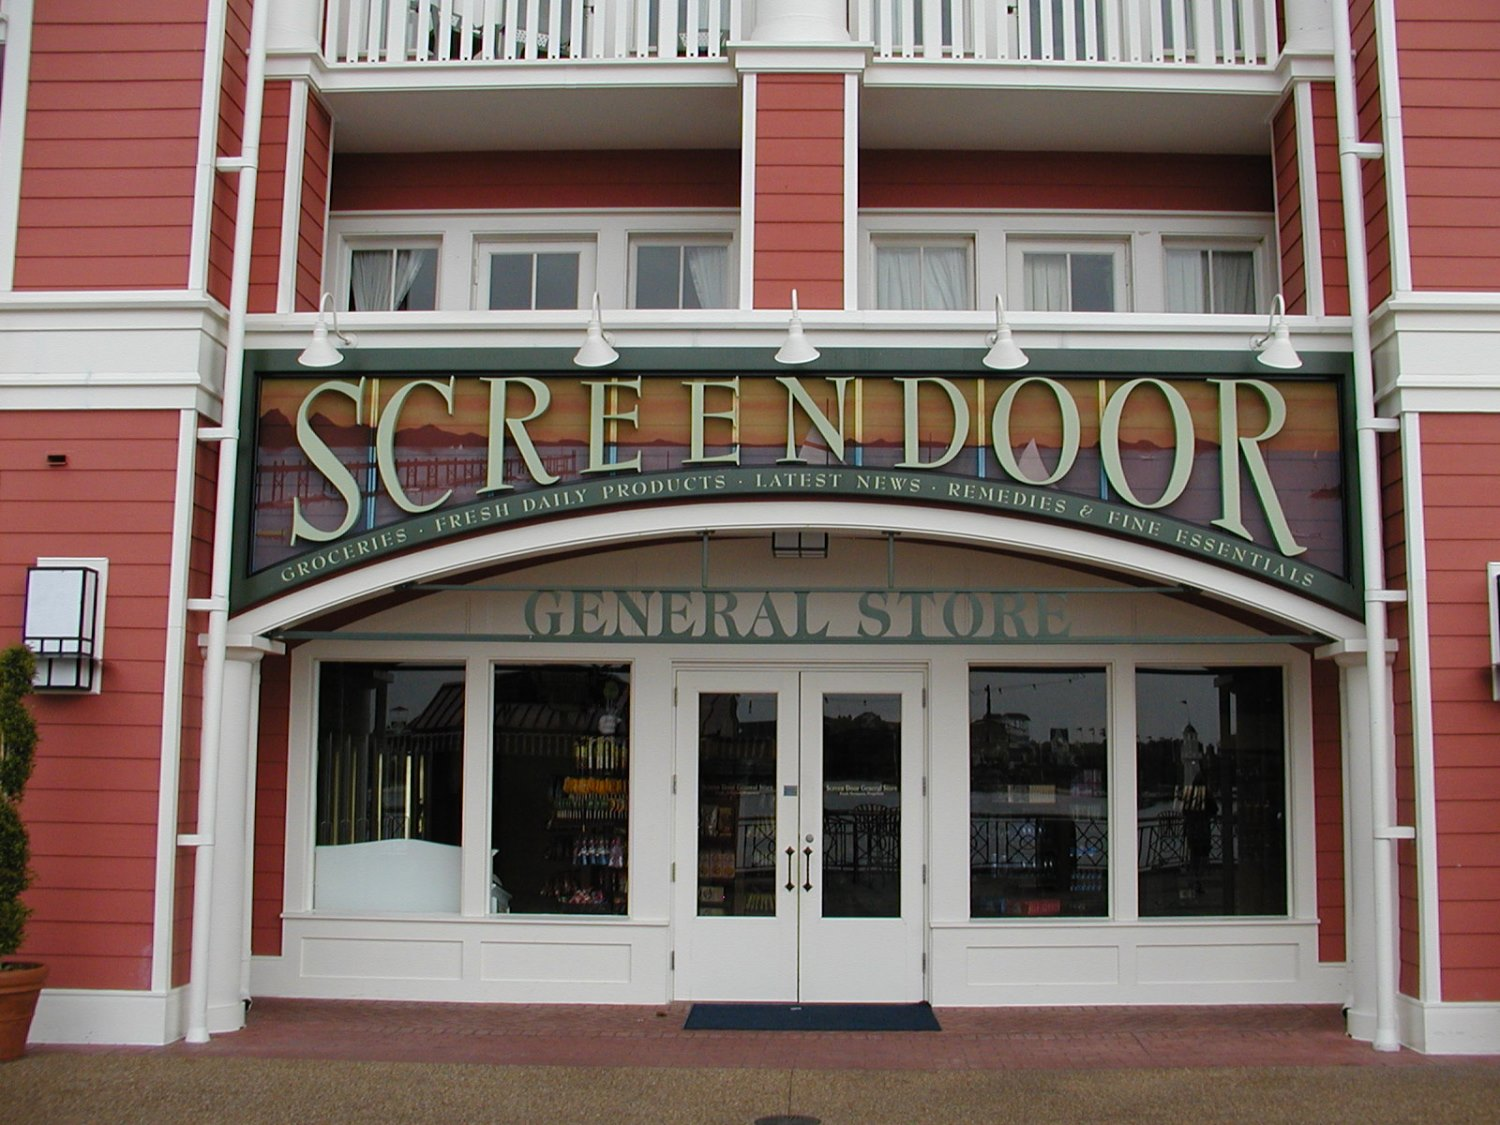 Disney's Boardwalk Screen Door General Store